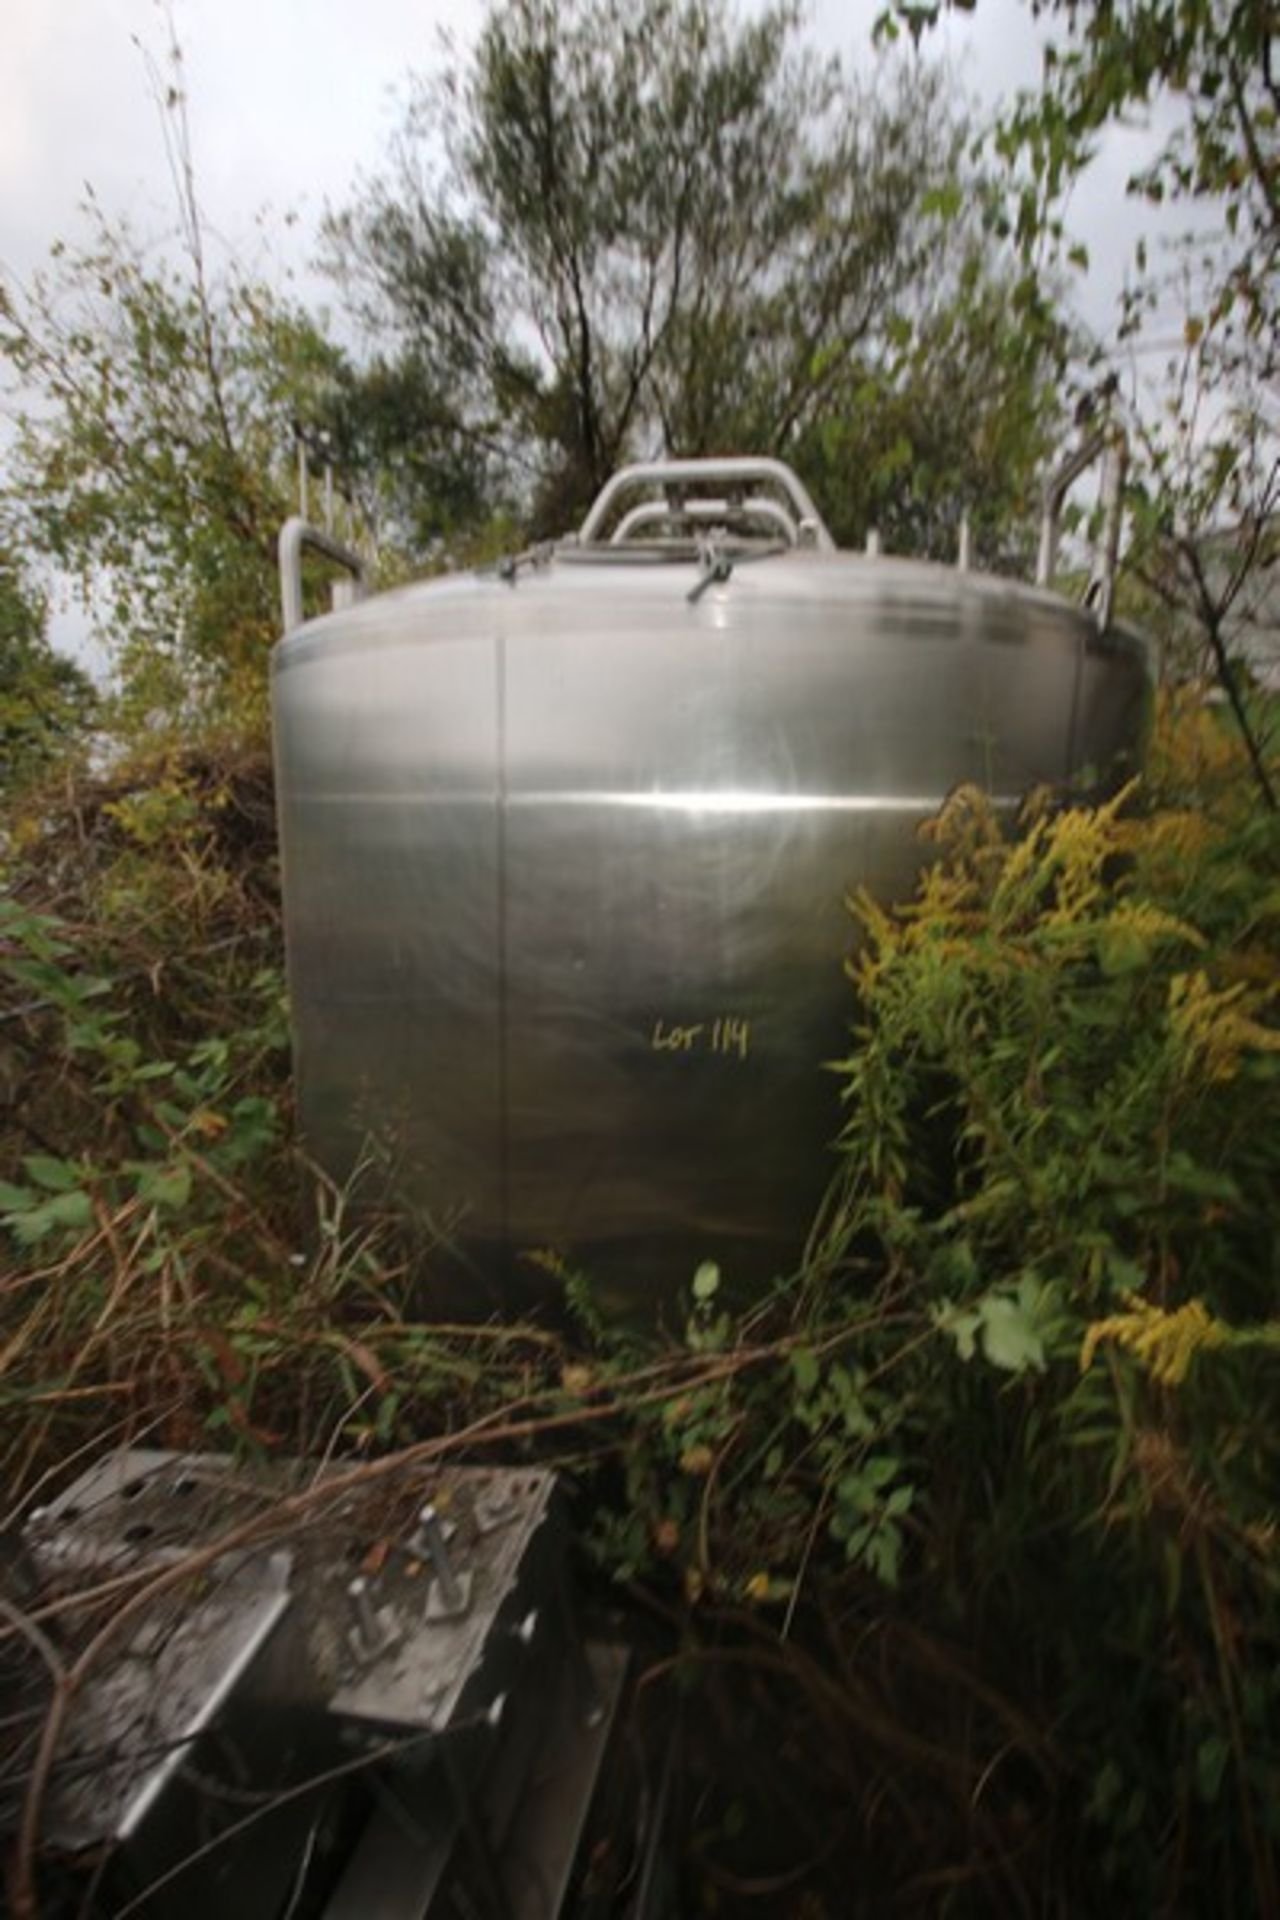 """Aprox. 2,300 Gal. S/S Processor, Tank Dims.: Aprox. 8' Diameter x 76"""" Straight Side. Dish Top, - Image 2 of 4"""